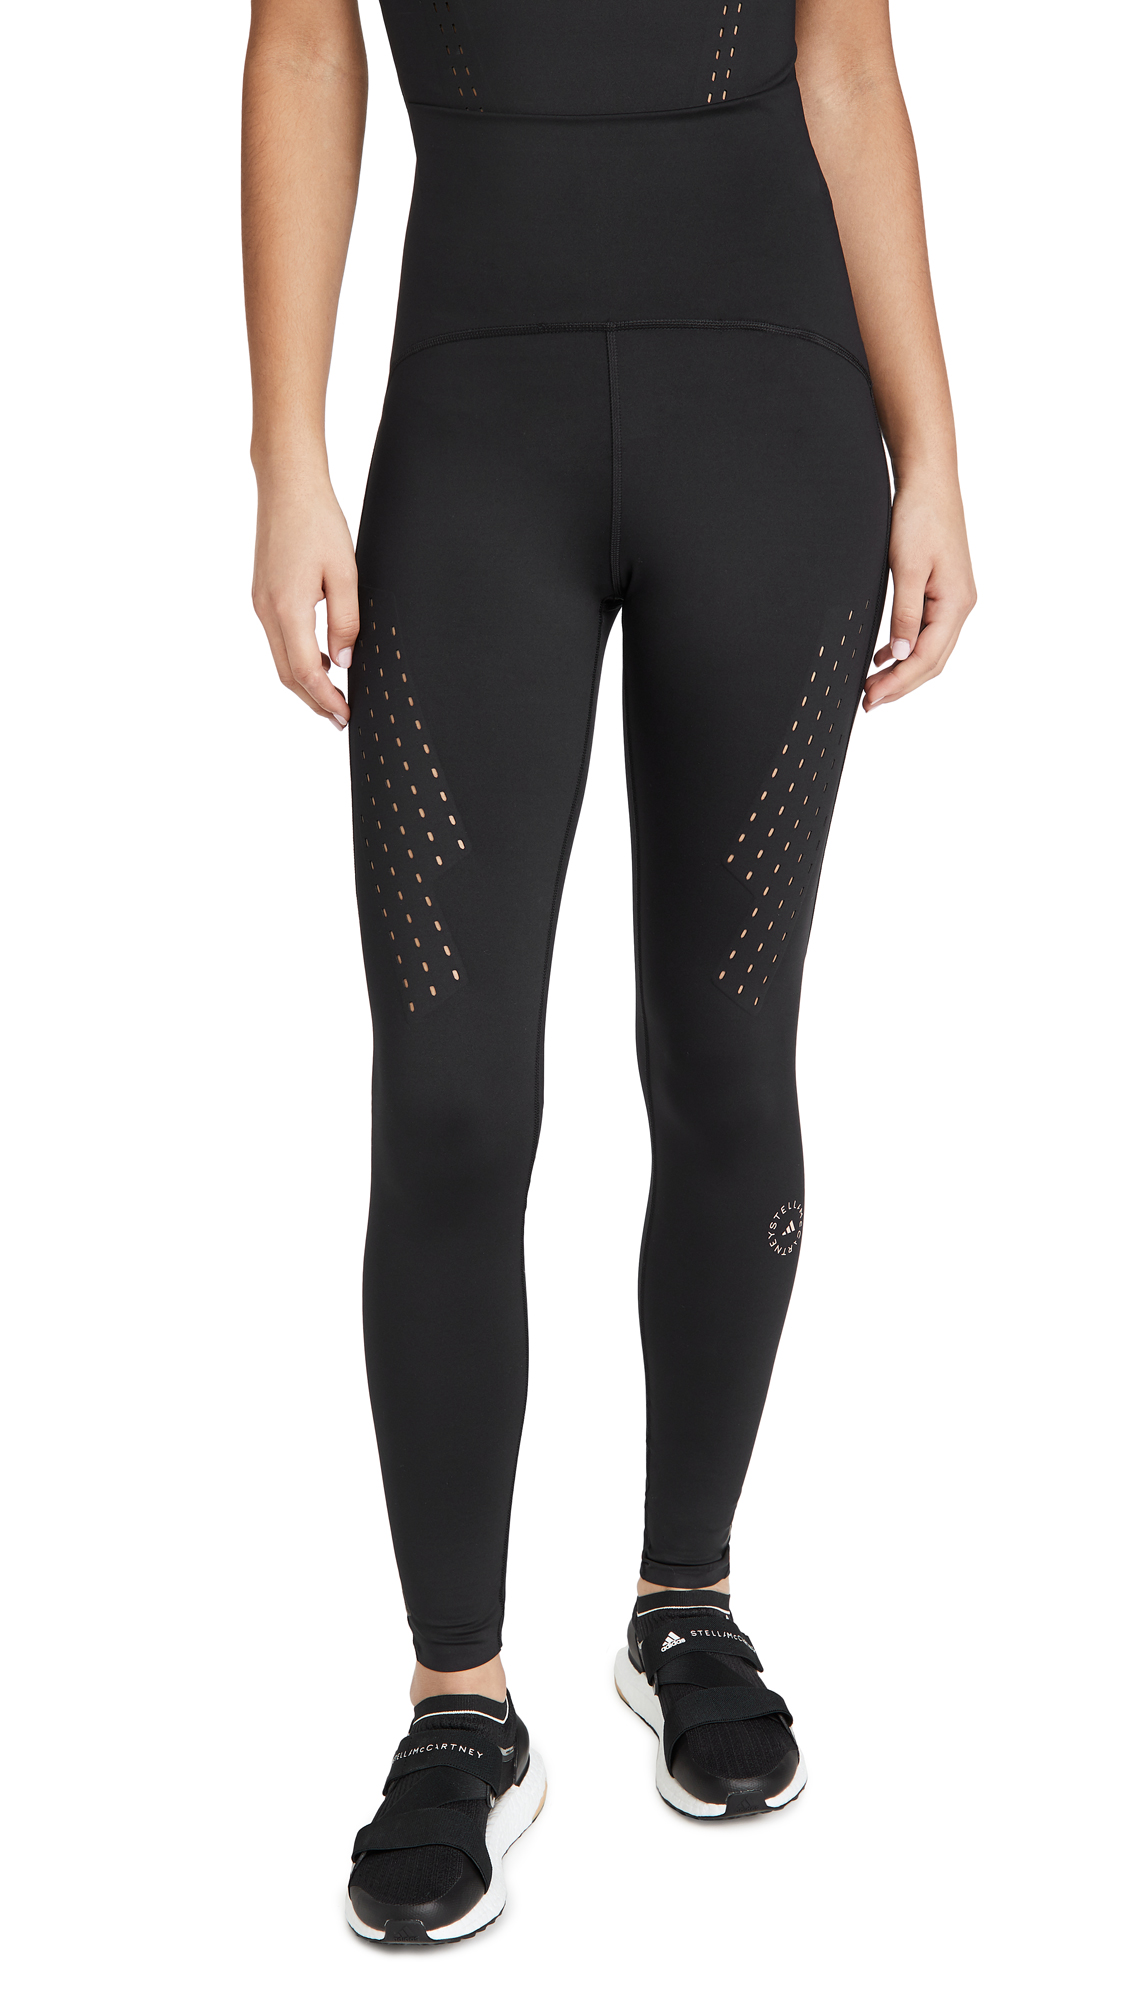 adidas by Stella McCartney Truepurpose Tights